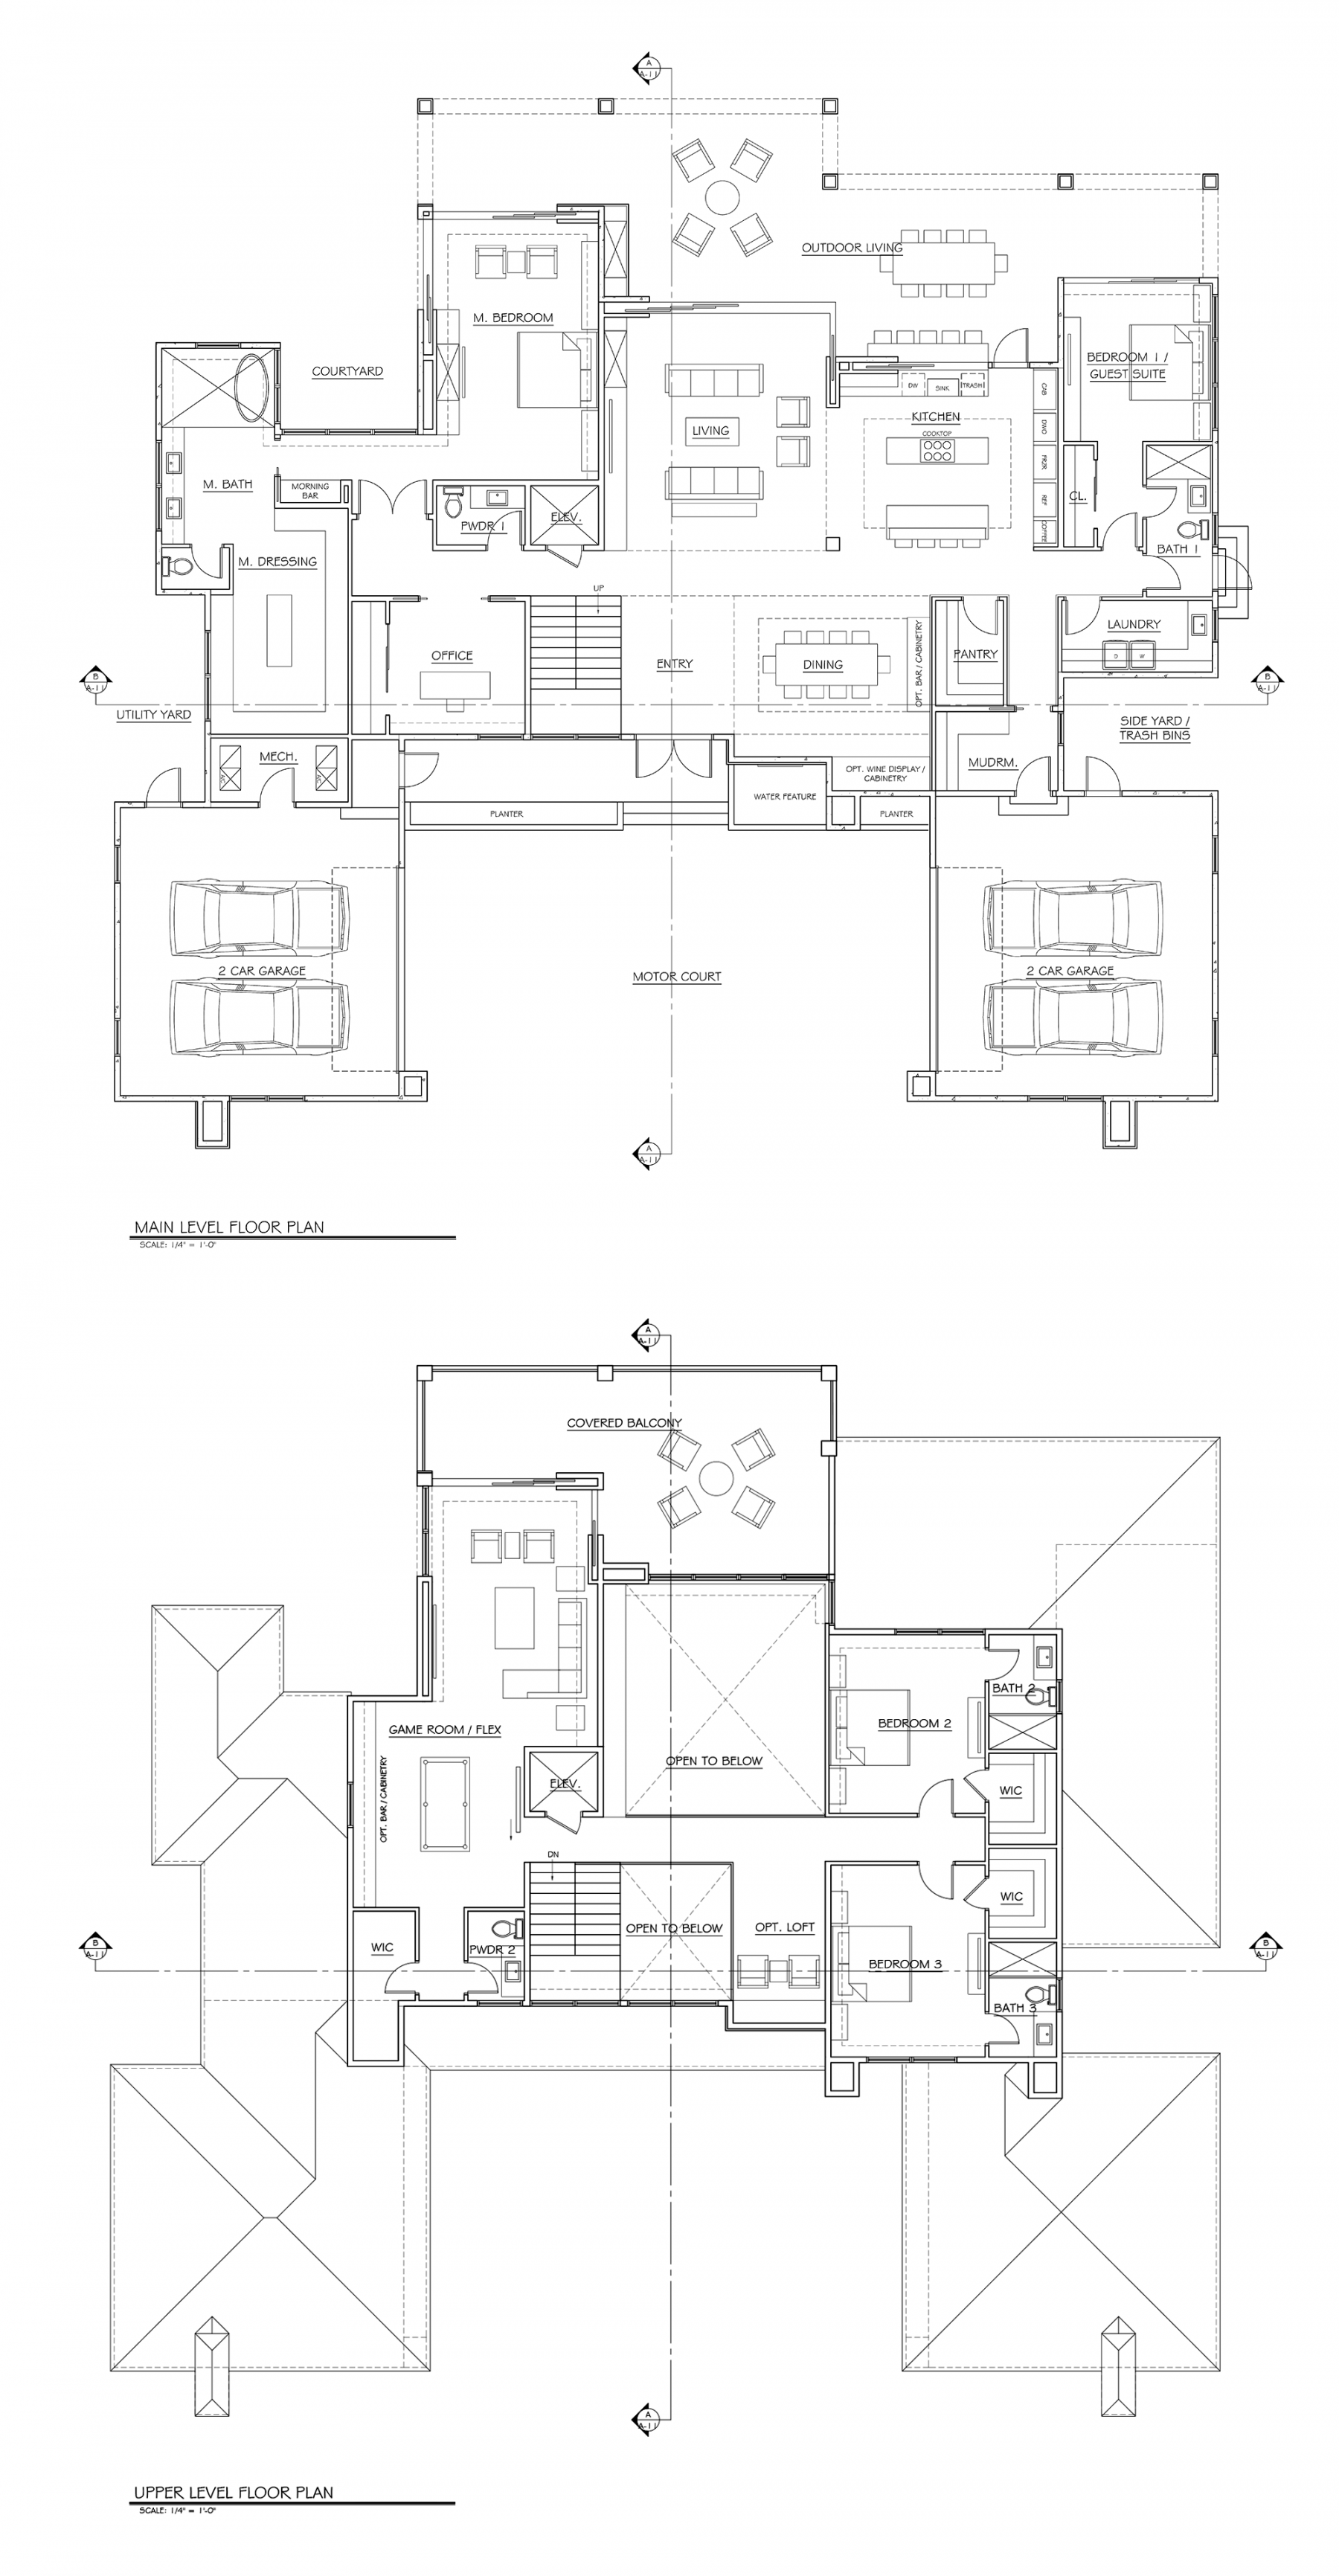 floorplan_alt